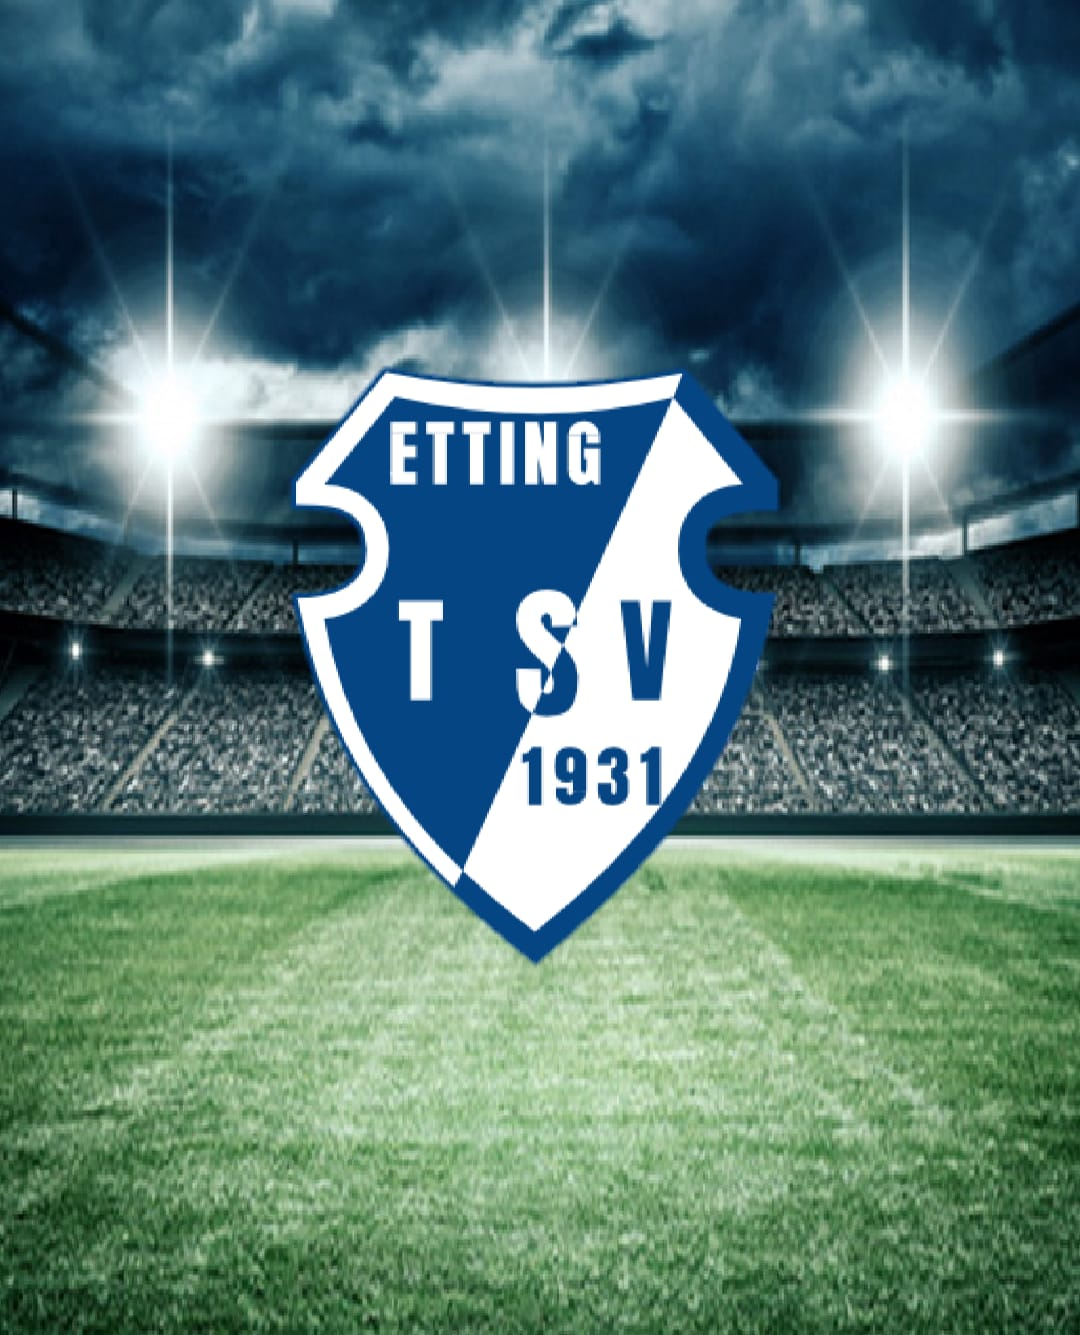 TSV Etting